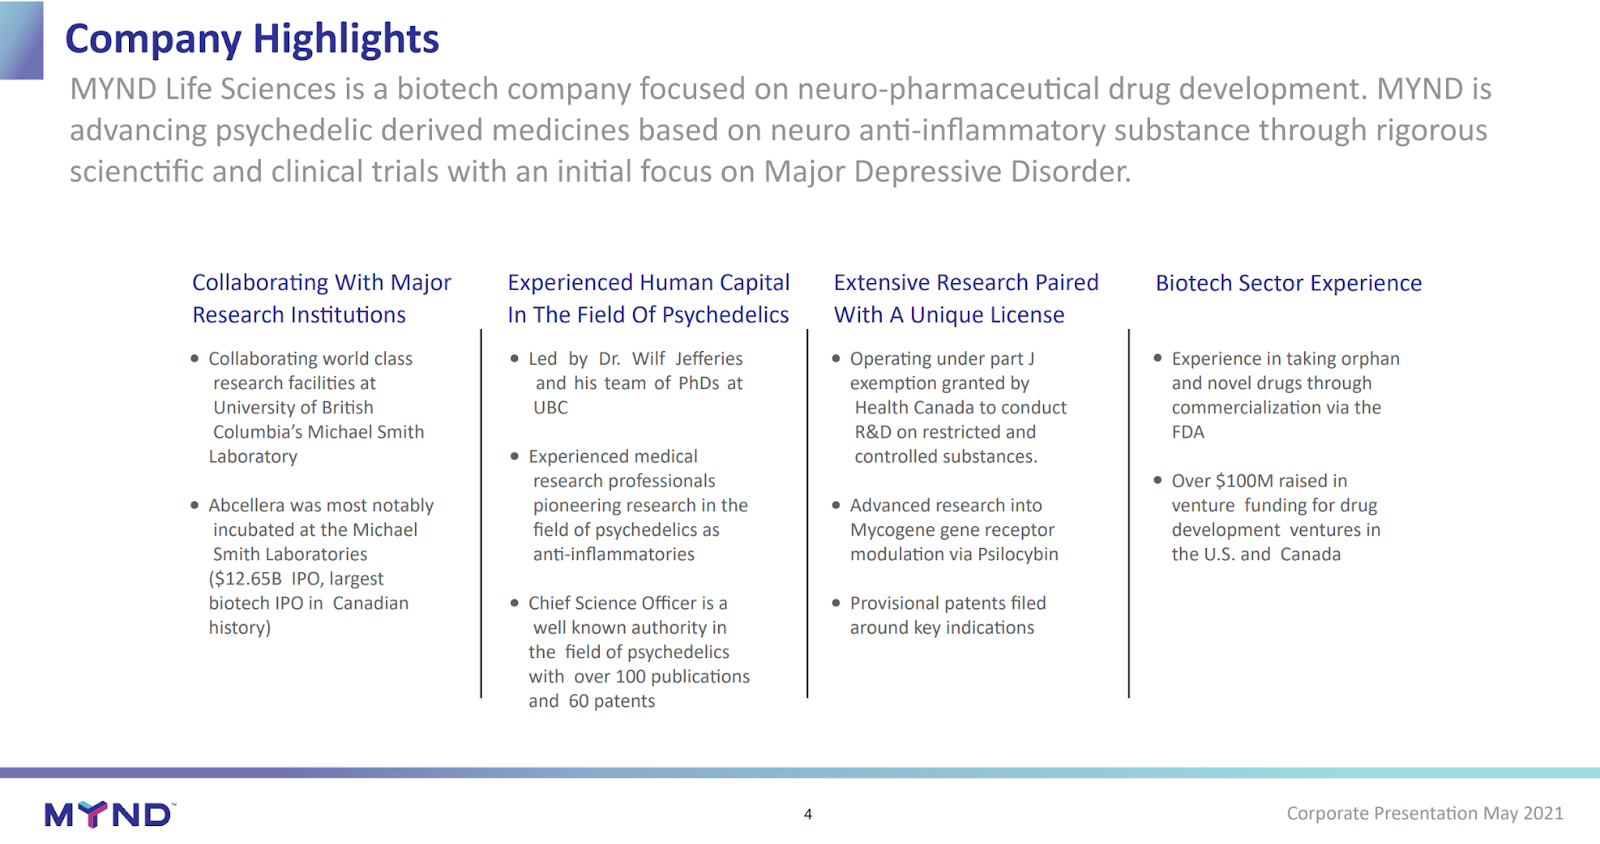 MYND Life Sciences company focused on developing drugs for depression